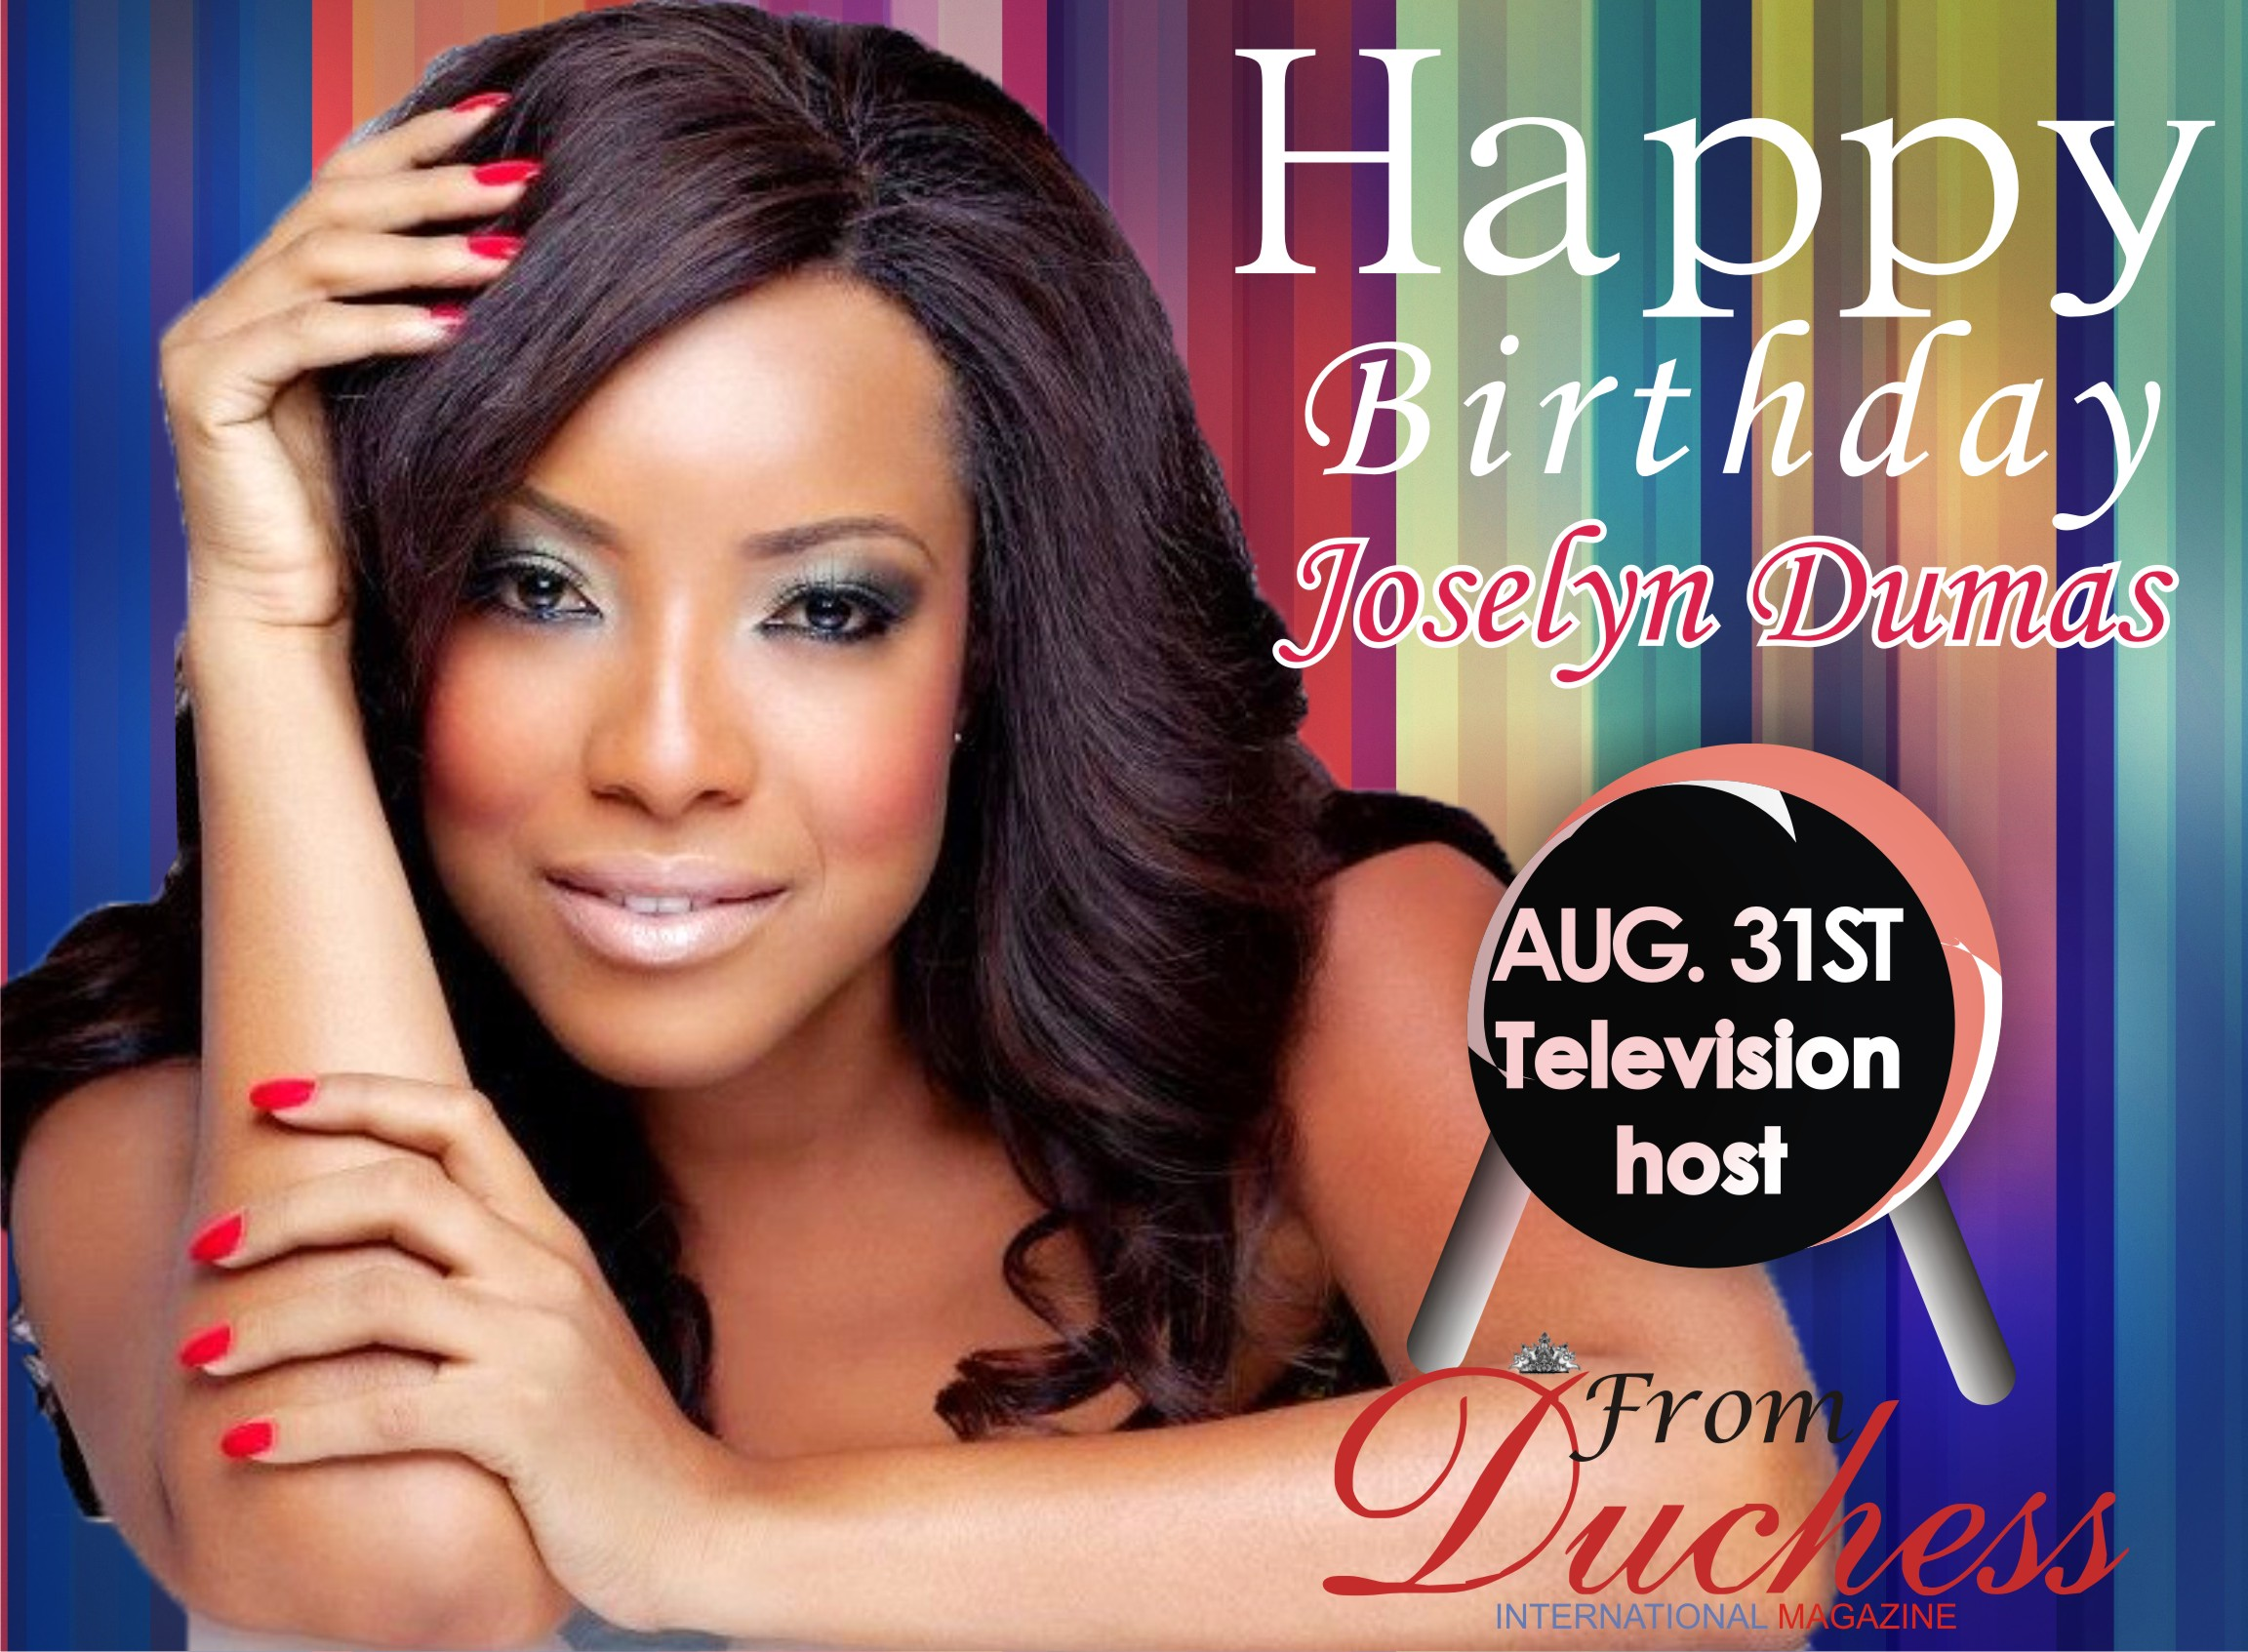 HAPPY BIRTHDAY TO A SCREEN DIVA-JOSELYN DUMAS